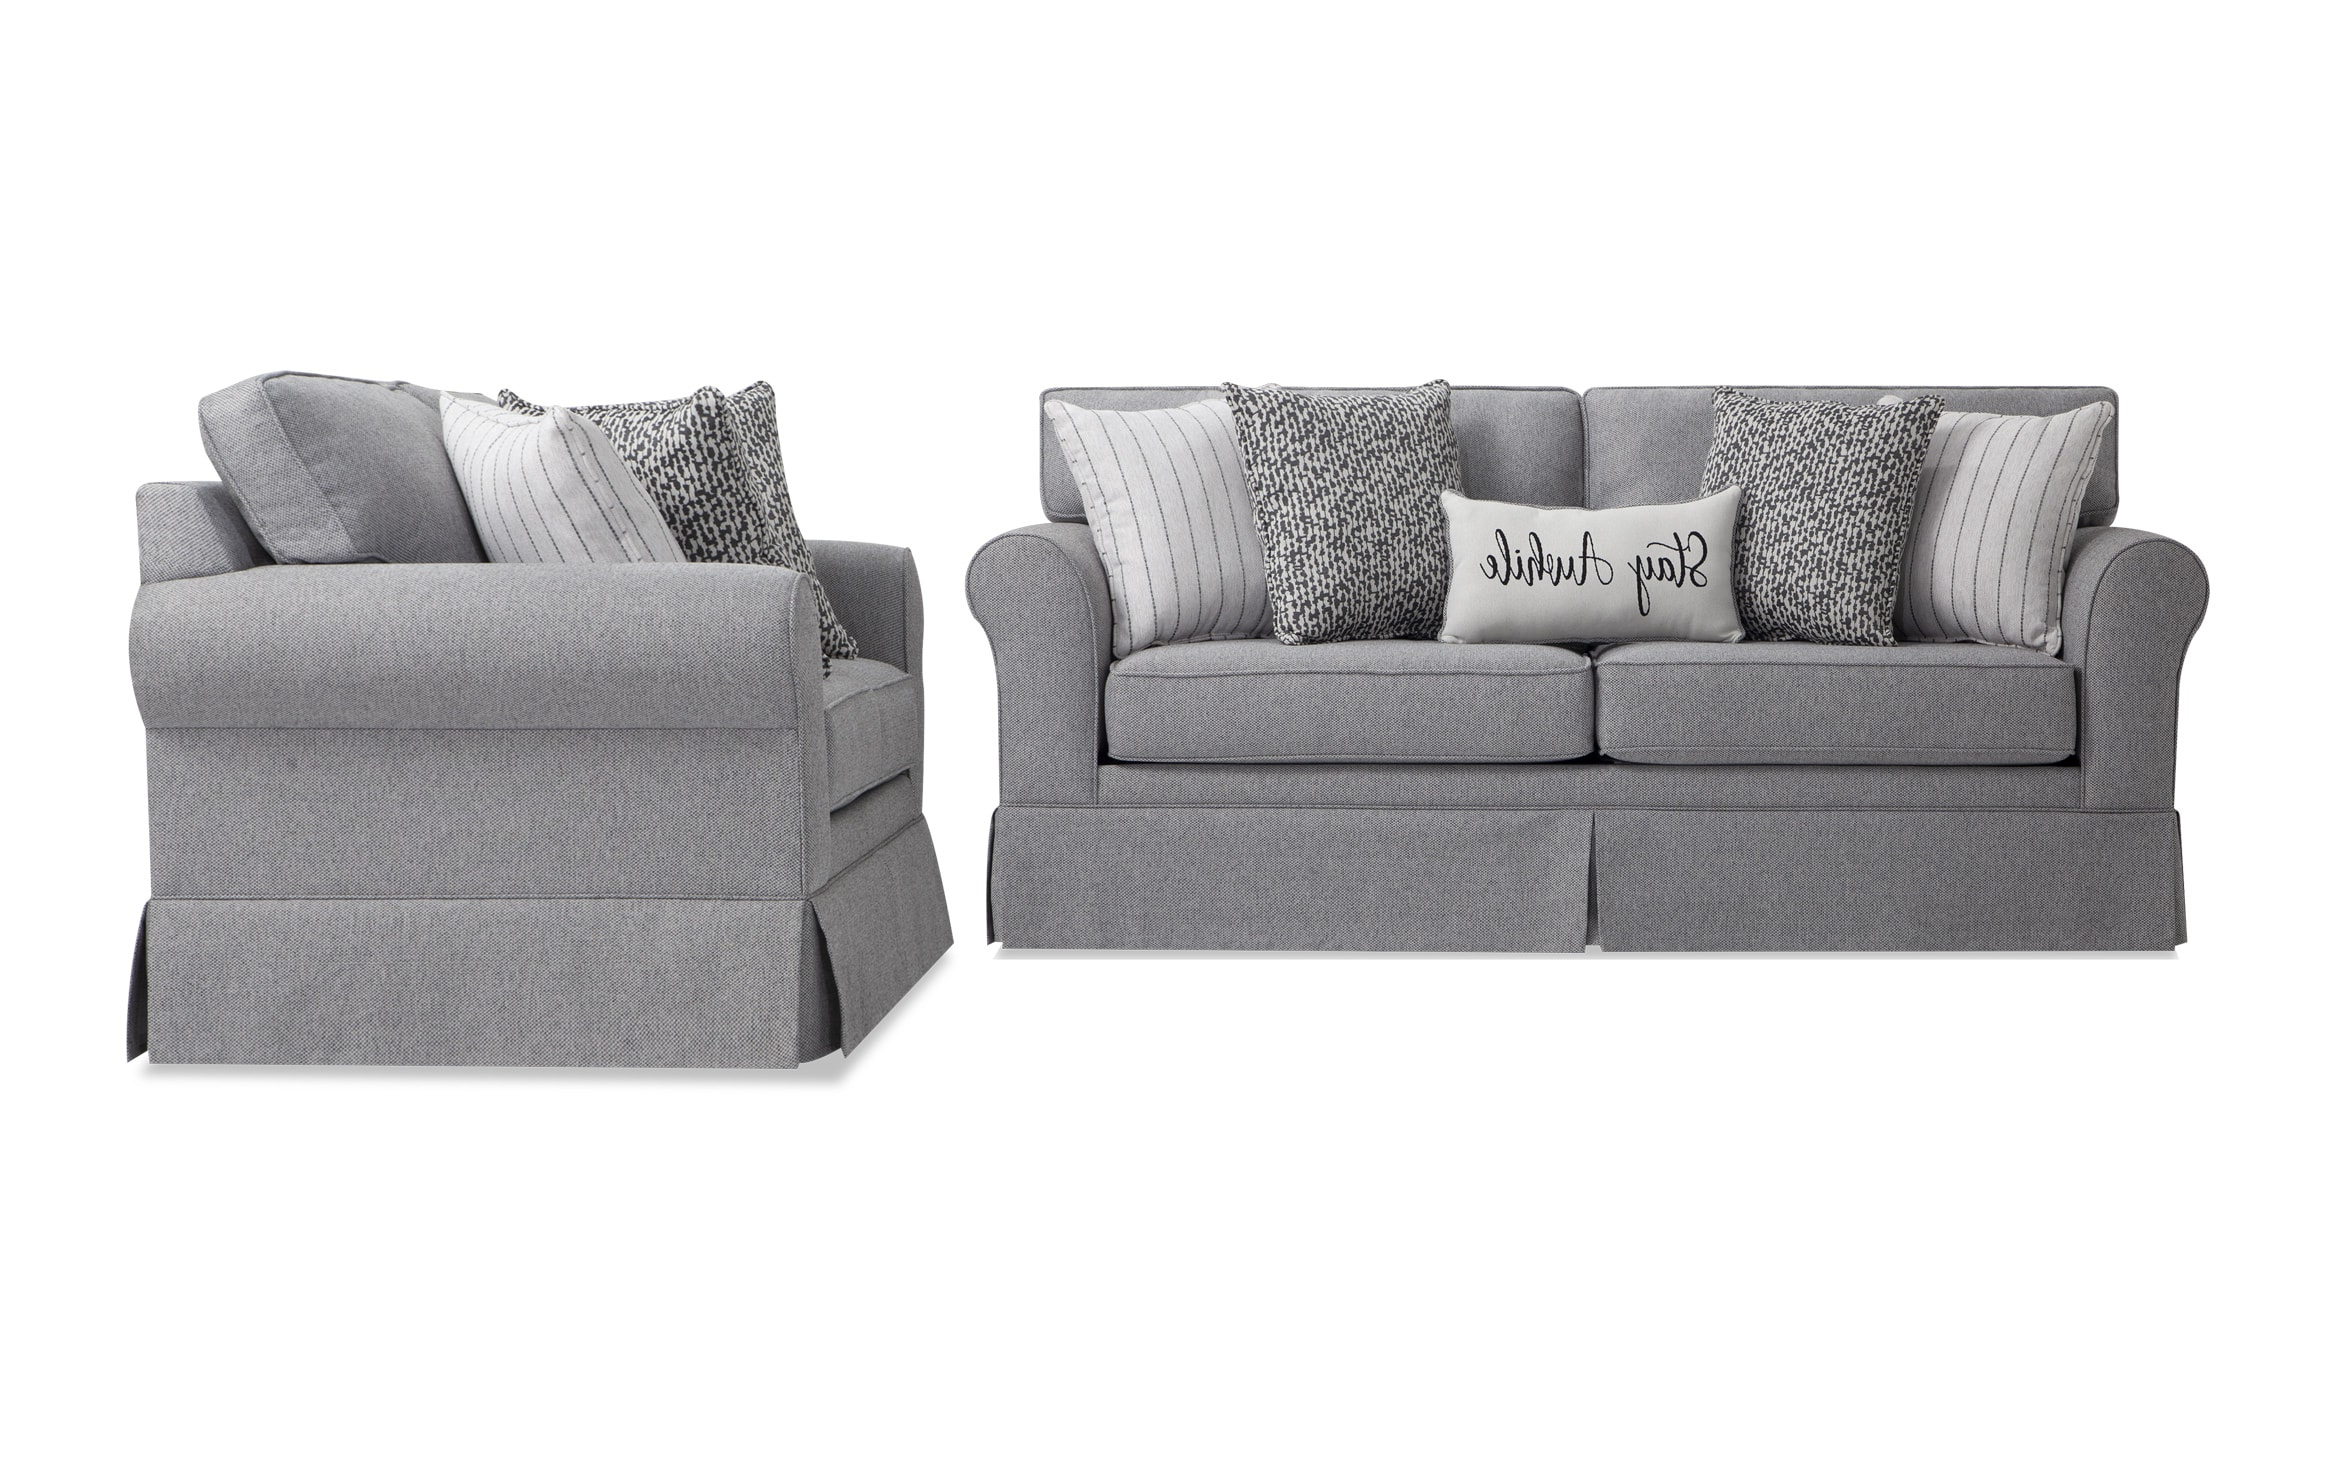 Scarlett Beige Sofas Regarding Widely Used Bobs Furniture Sofa And Loveseat Sets (View 3 of 15)